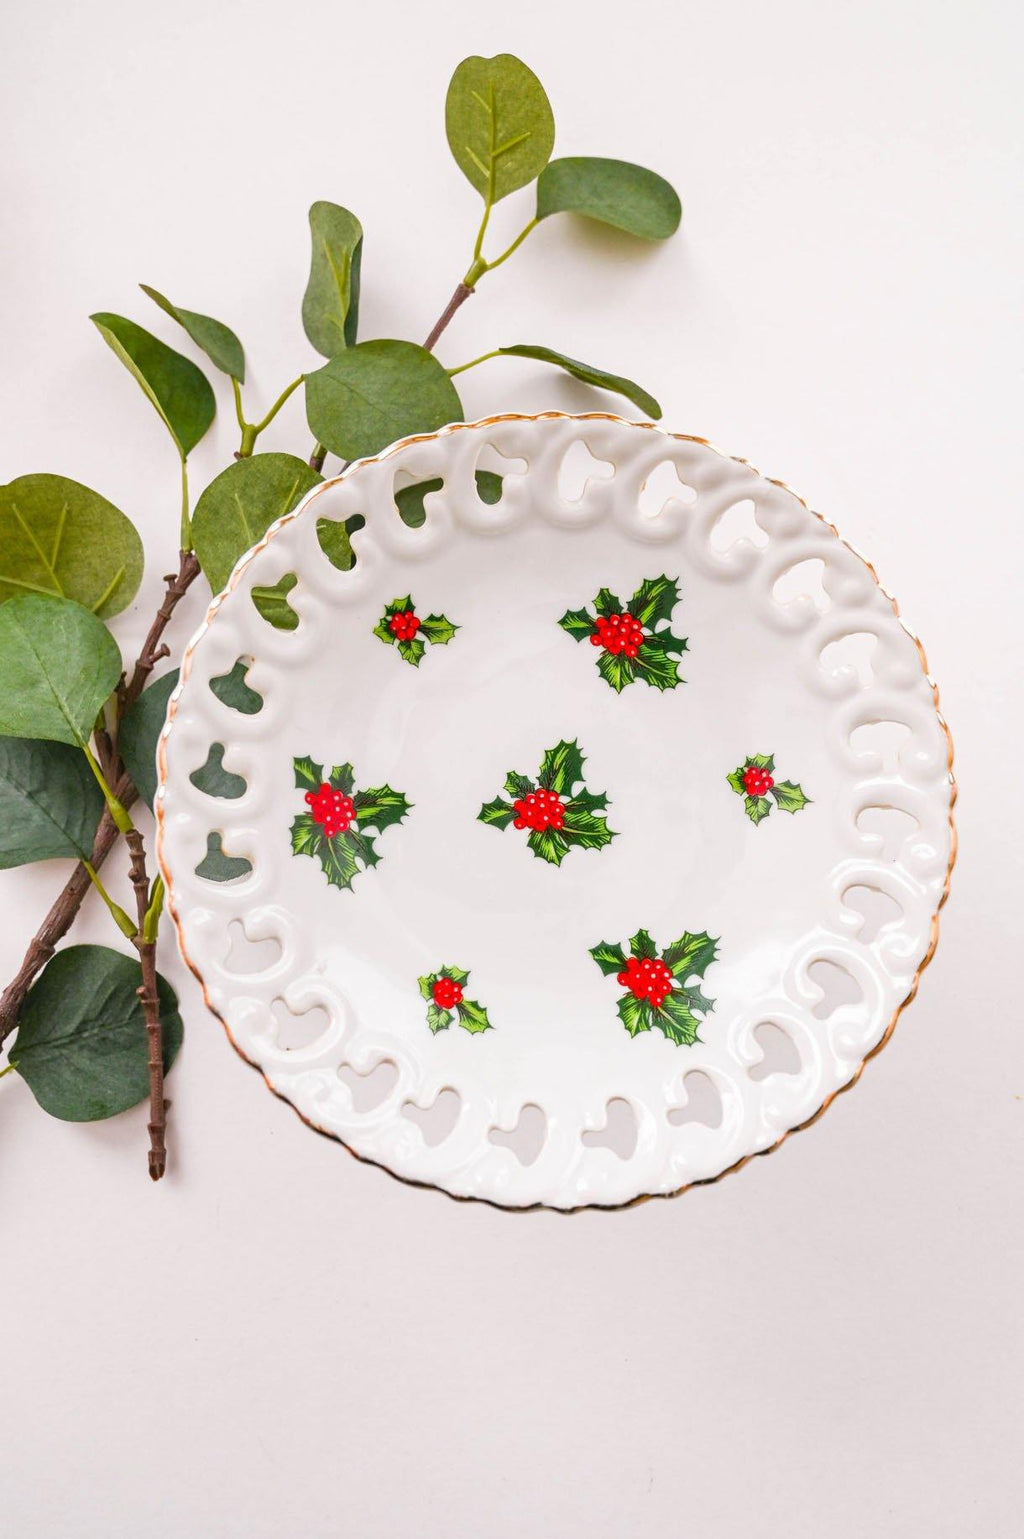 Holly Leaf Serving Tray